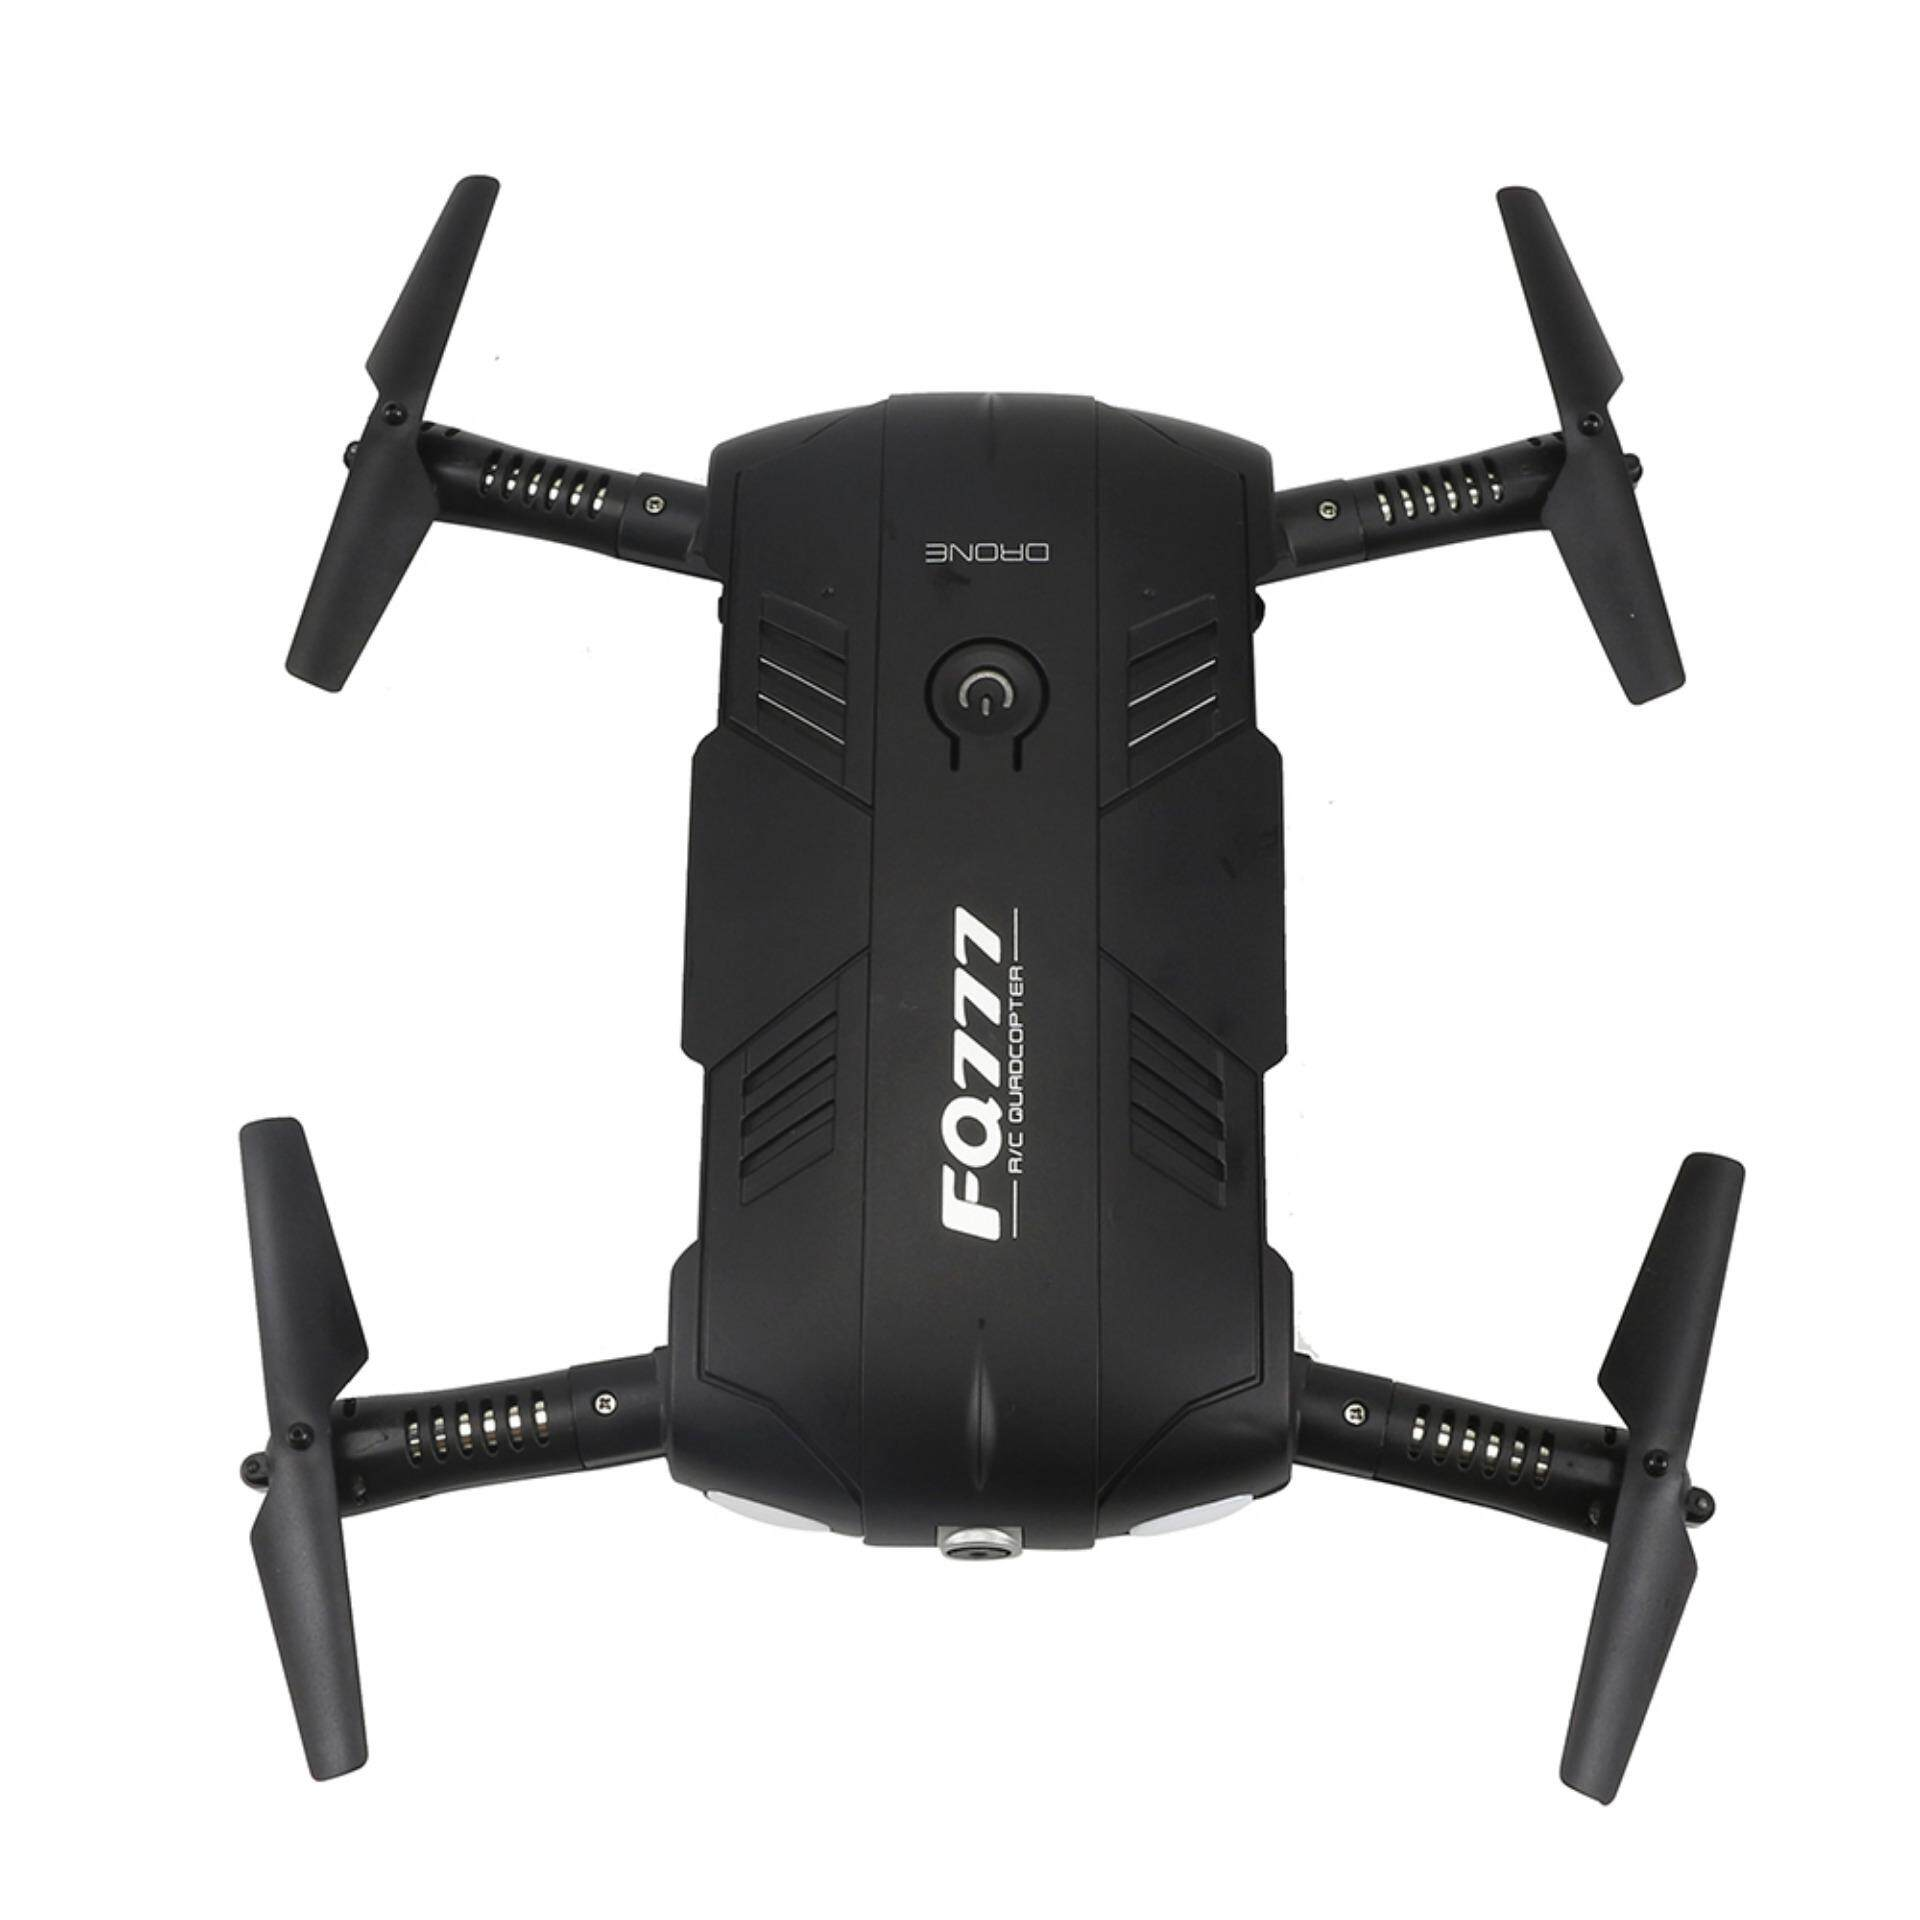 GETEK FQ777 FQ05 Gyro Mini Wifi FPV 4CH 6-Axis Pocket Drone with 0.3MP Camera